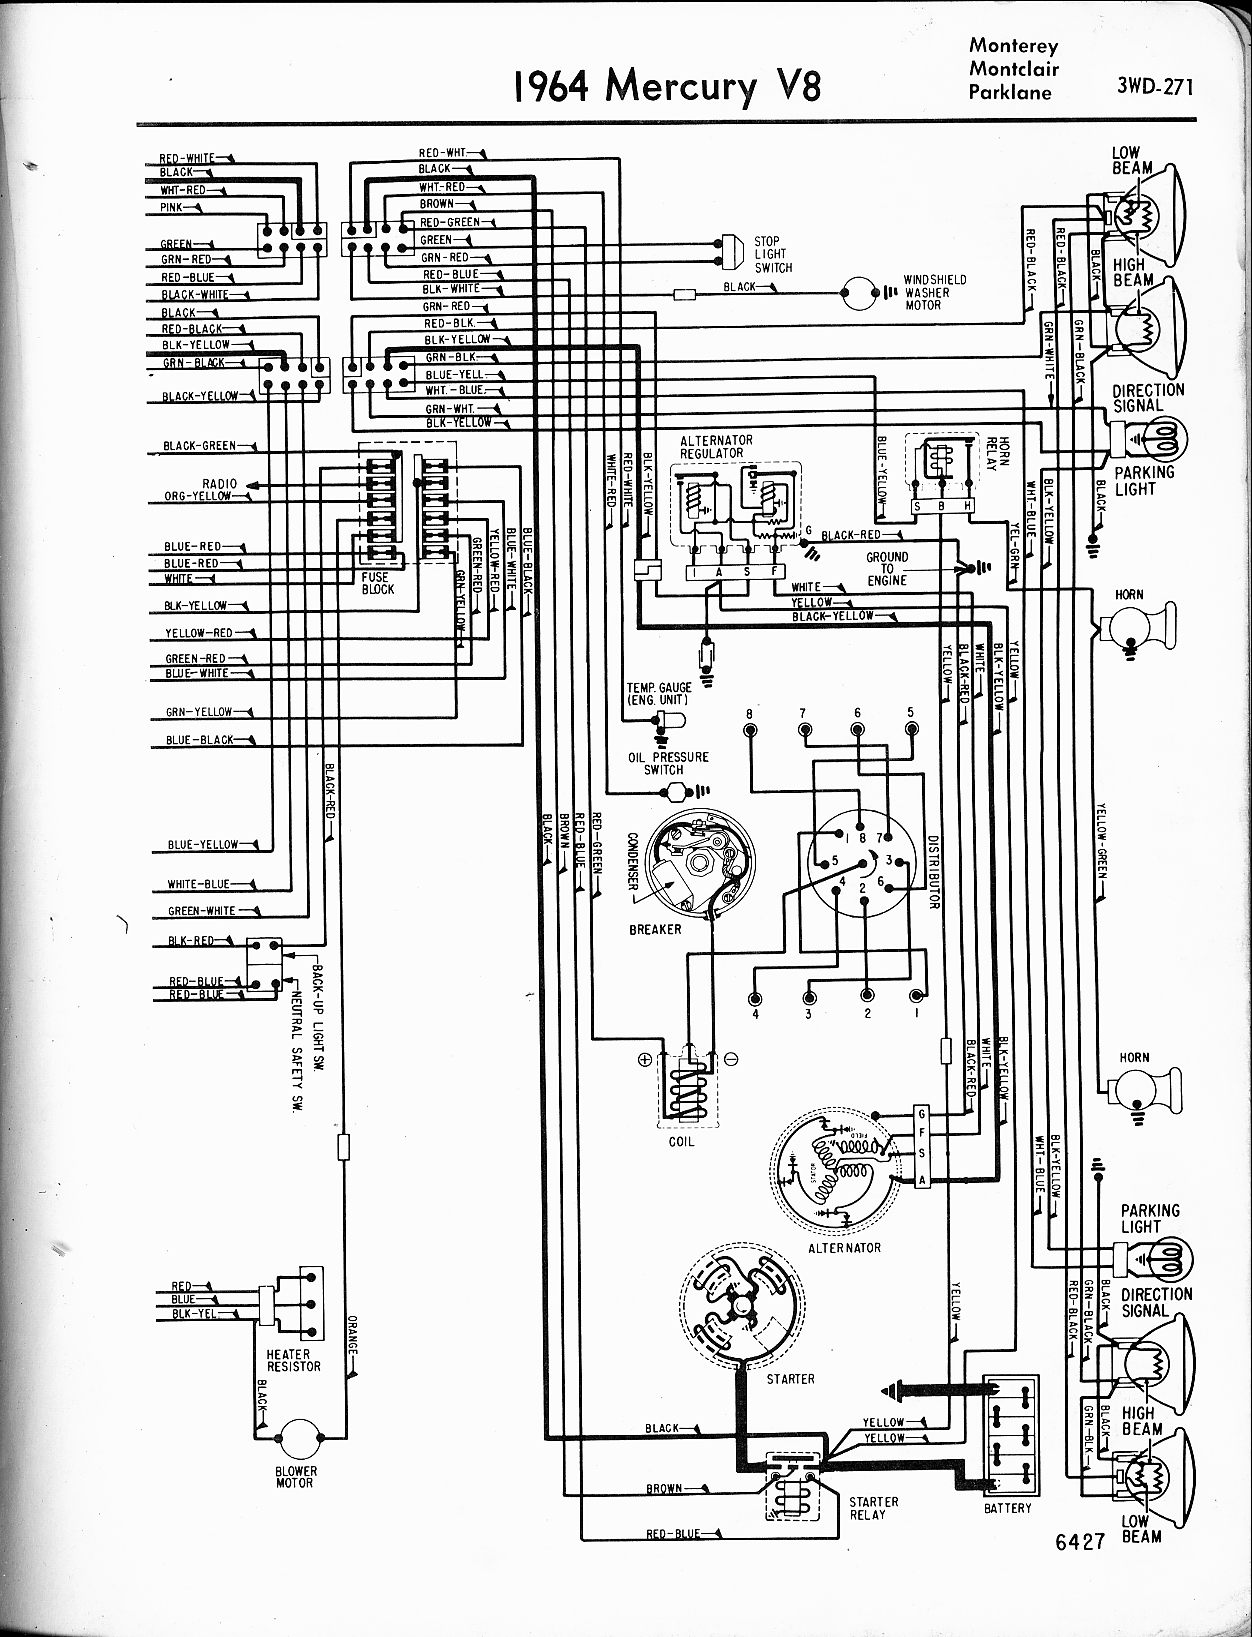 MWire5765 271 mercury wiring diagrams the old car manual project 1963 ford thunderbird fuse box location at fashall.co